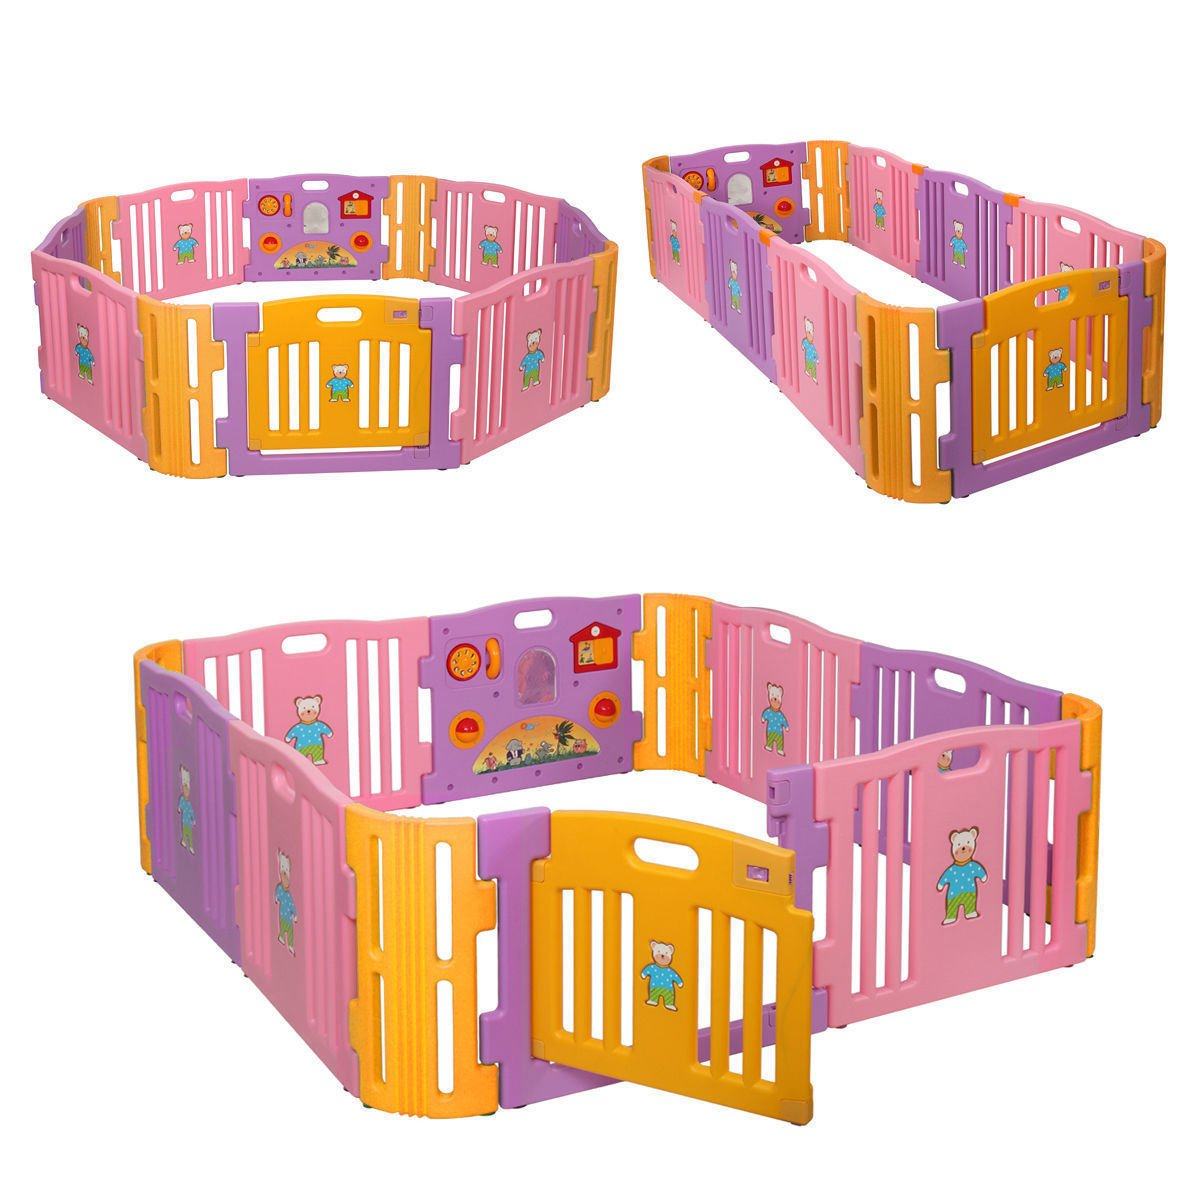 JAXPETY Baby Playpen Kids Safety Play Center Yard Home Indoor Outdoor New Pen (8+4, Pink and Yellow)